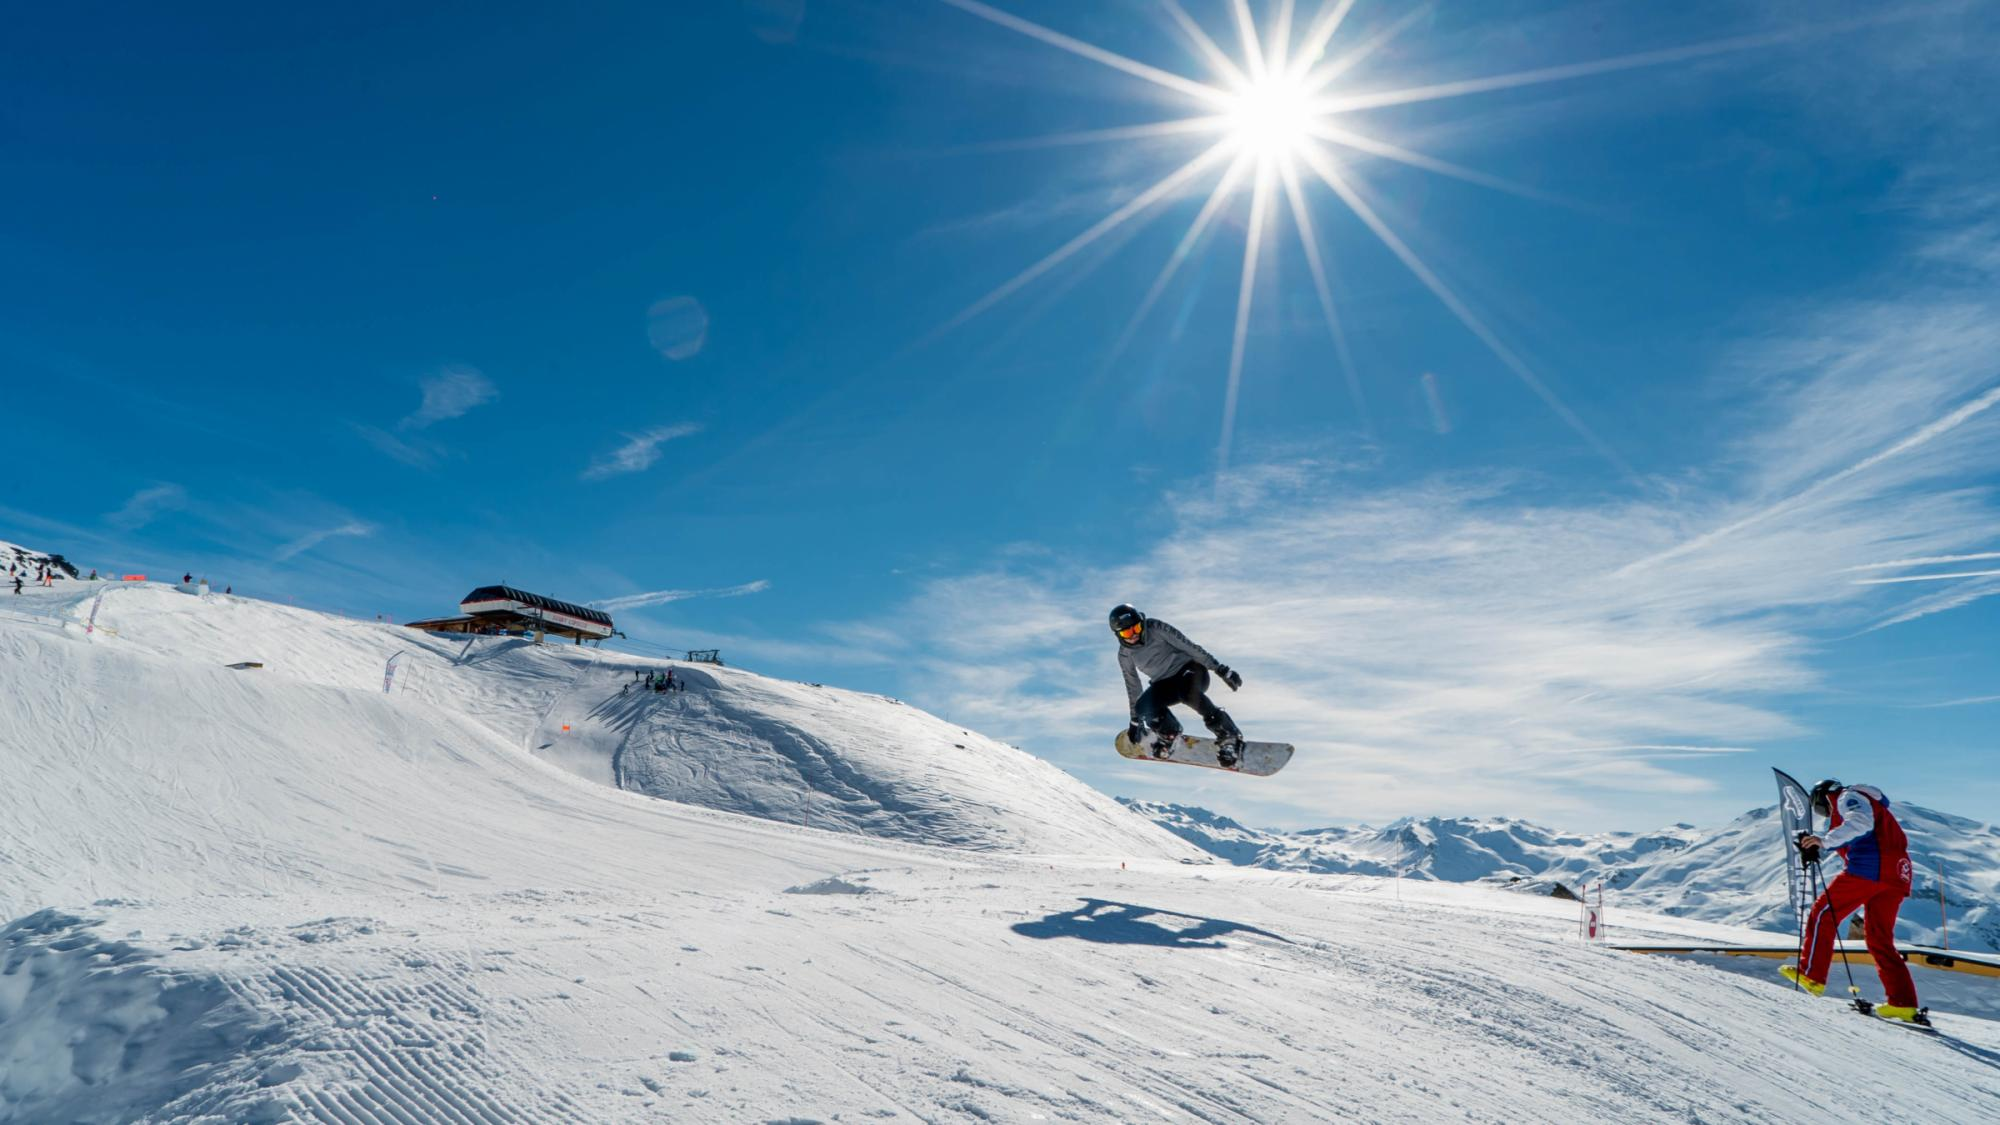 Find out what's new in the 3 Valleys in winter 2018/2019